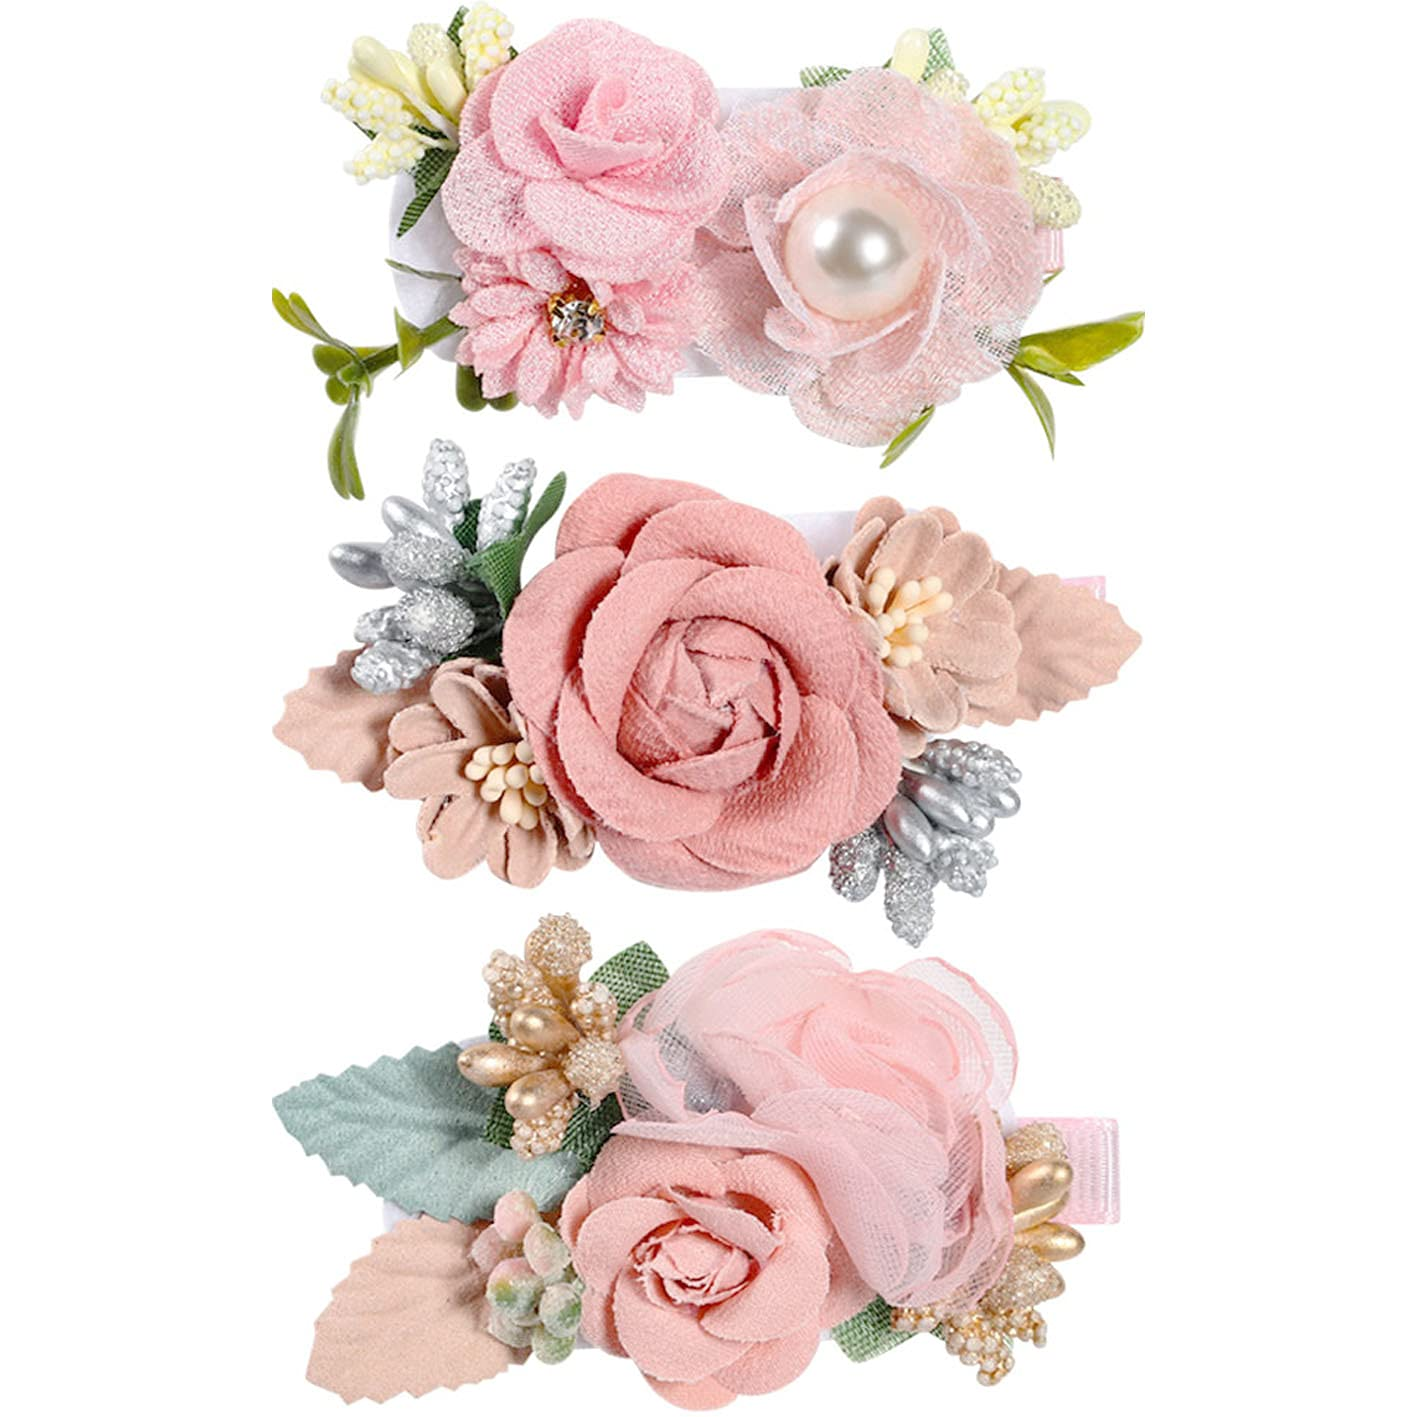 Girls Flower Hair Clips Set 3pcs Flower Hair Bows Clips Accessories for Baby Girl Toddles Teen Gifts (Hiar clips set 1)